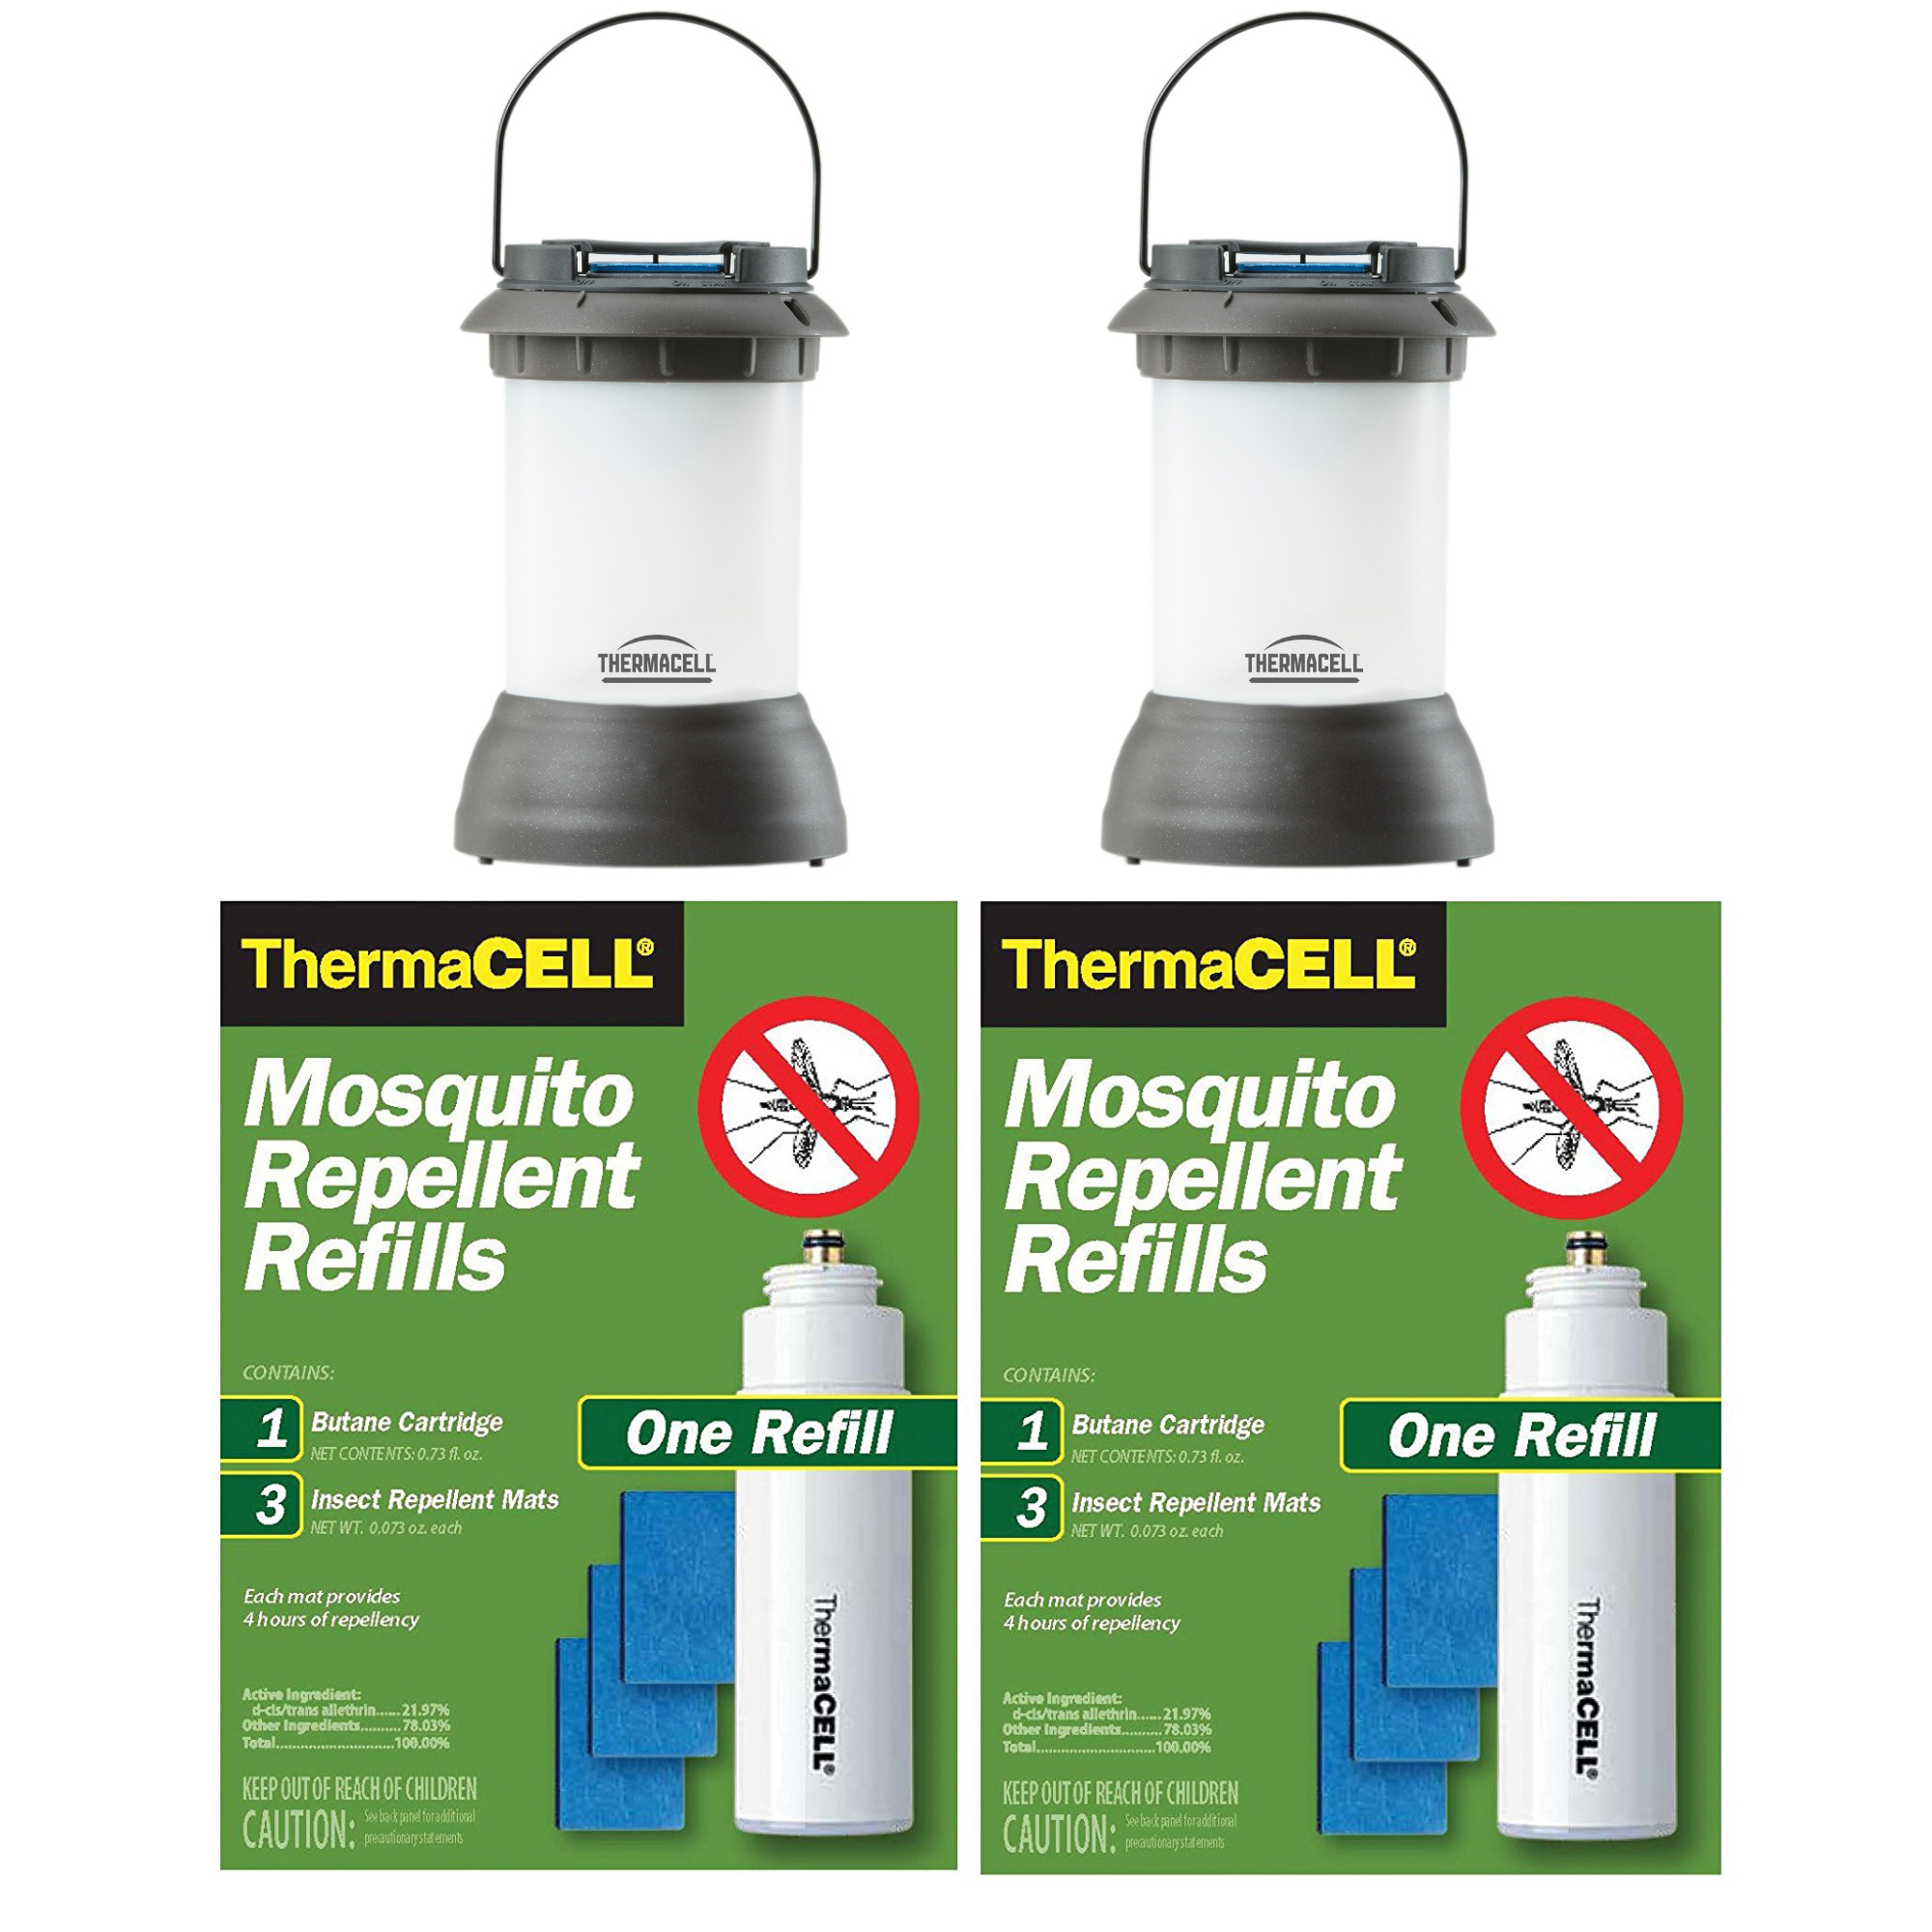 Click here to buy ThermaCELL Patio Shield Mosquito Repeller plus Lanterns (2) & 2 R-1 Refill Packs by Thermacell.